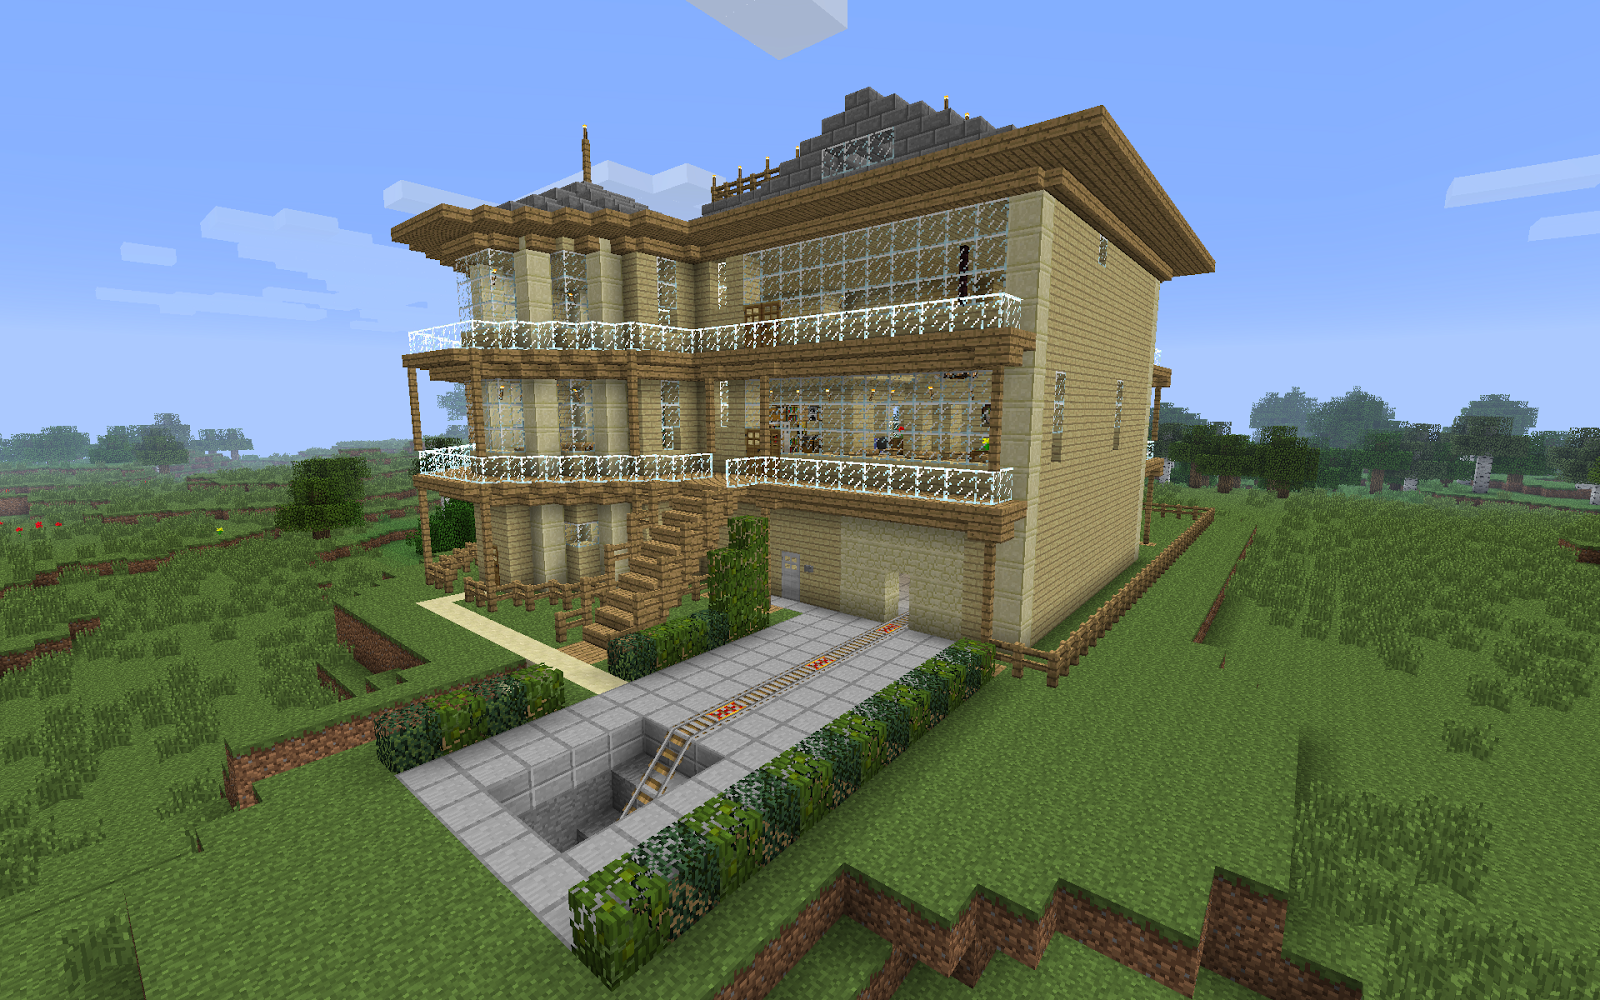 minecraft mountain house - Google Search | Minecraft ... on mine house designs, minecraft pc house designs, epic house designs, redstone house designs, glass house designs, minecraft survival house designs, minecraft sports house designs, best minecraft house designs, mansion house designs, minecraft ps3 house designs, play house designs, minecraft pocket edition house designs,